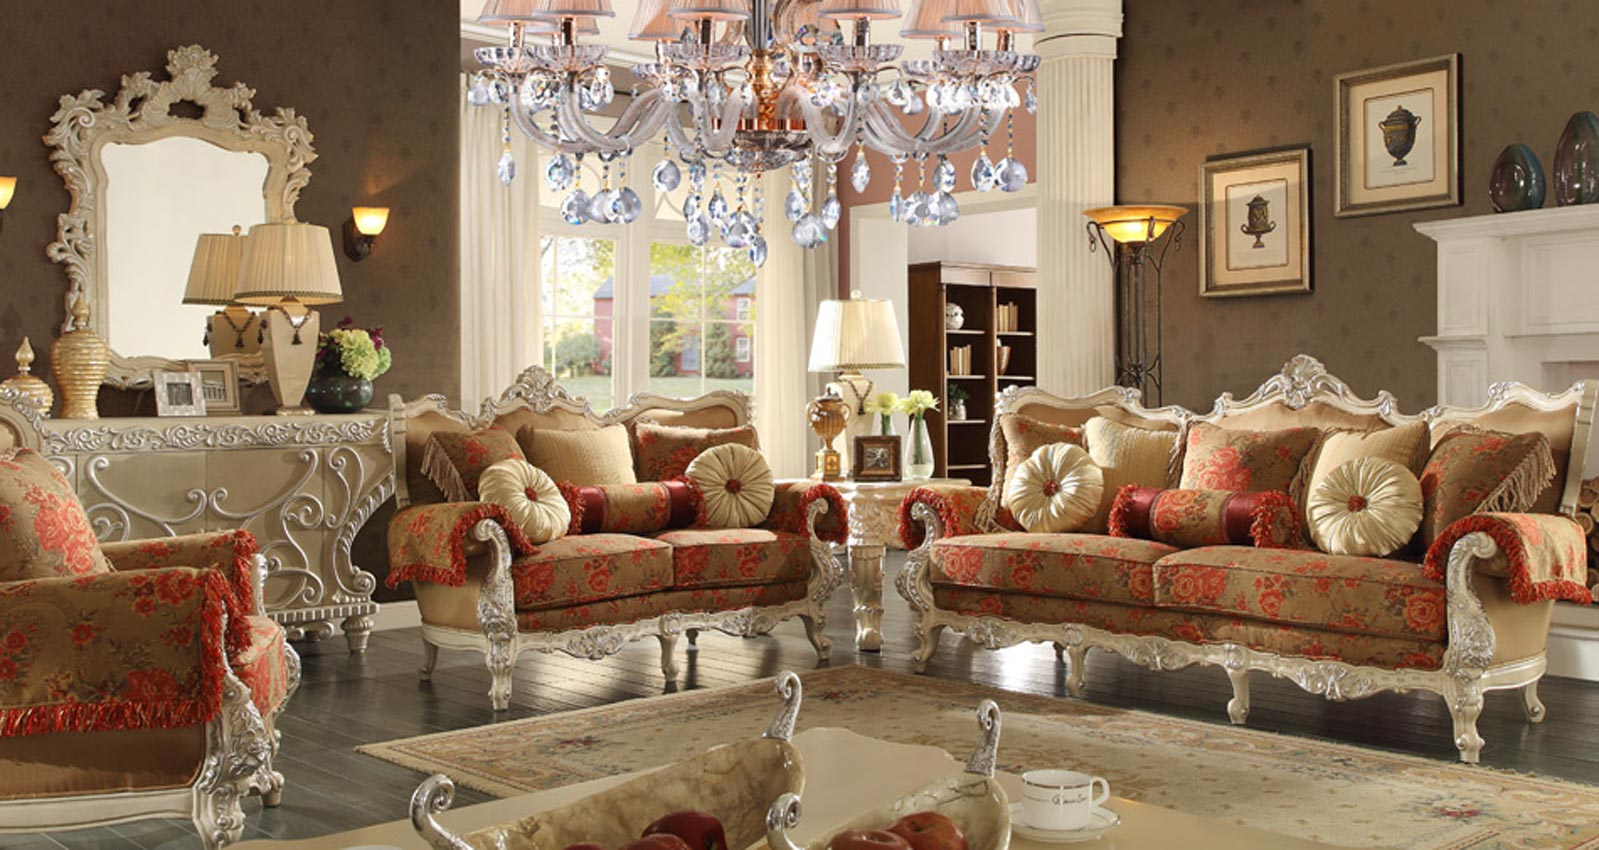 2 pcs red elegant living room set - Elegant formal living room furniture ...